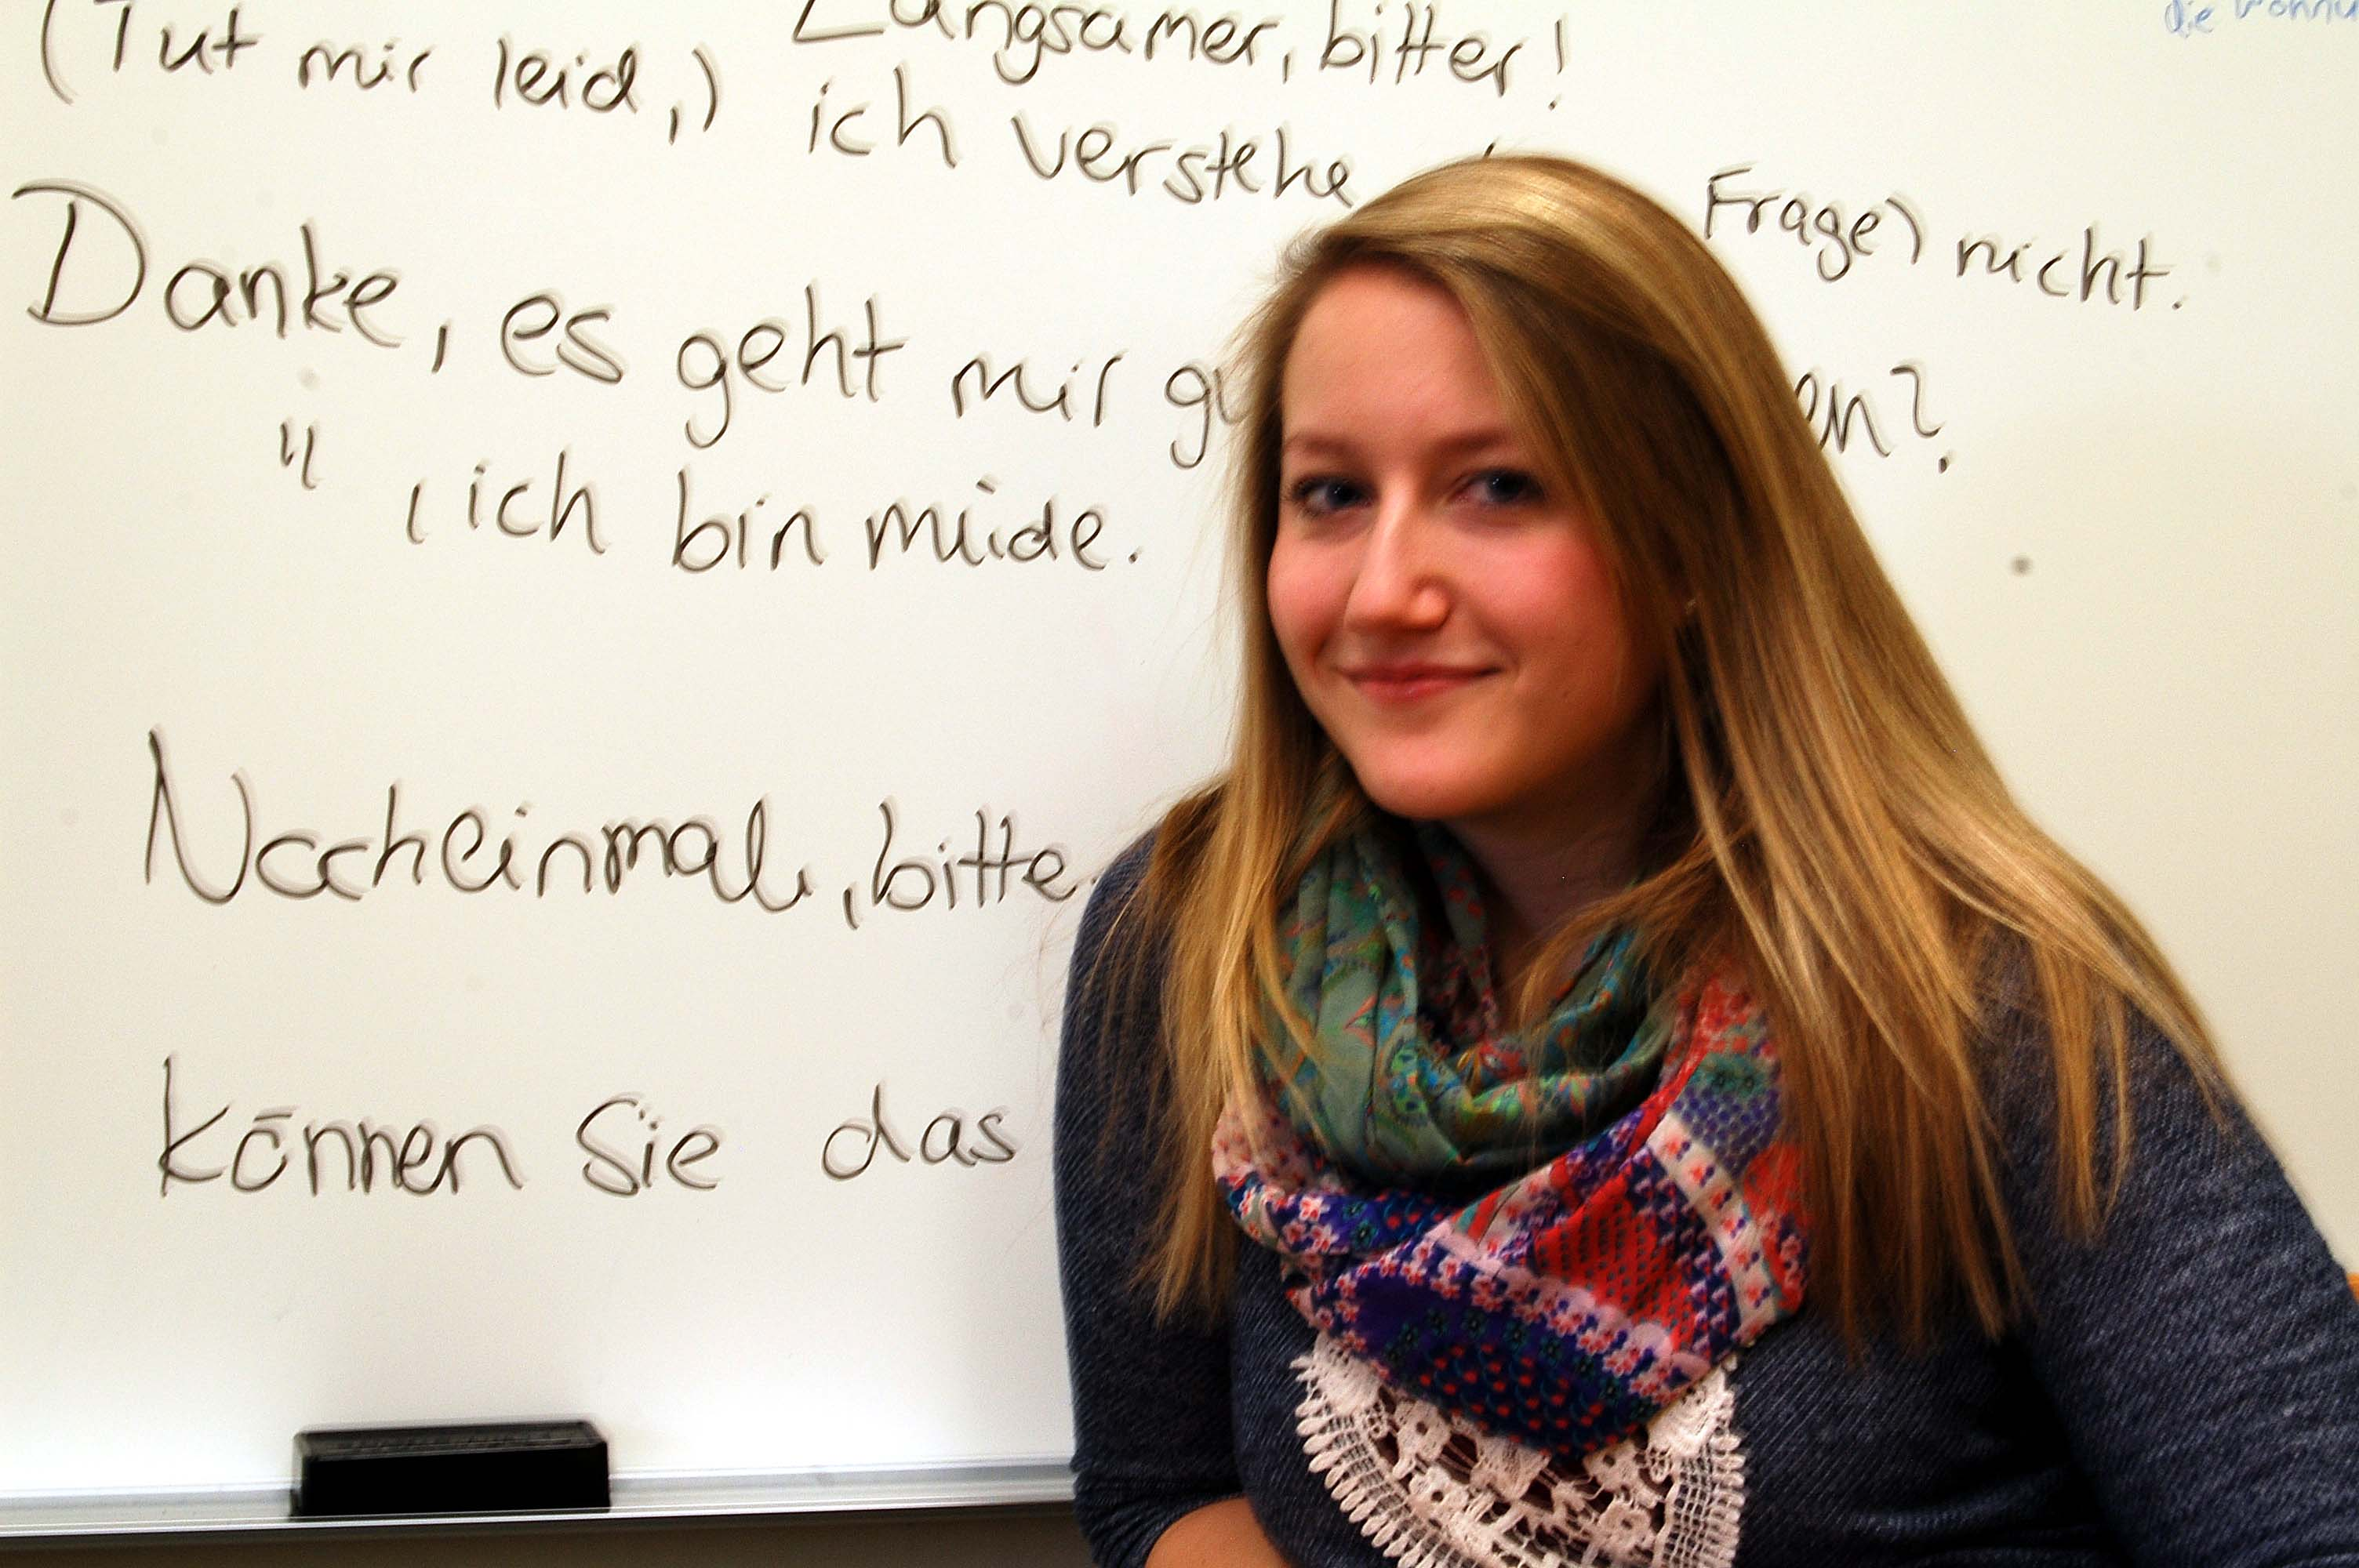 Katharina Schulz came to America from Cologne, Germany for a semester of teaching and studying with the Pennsylvania Colleges in Cologne program.